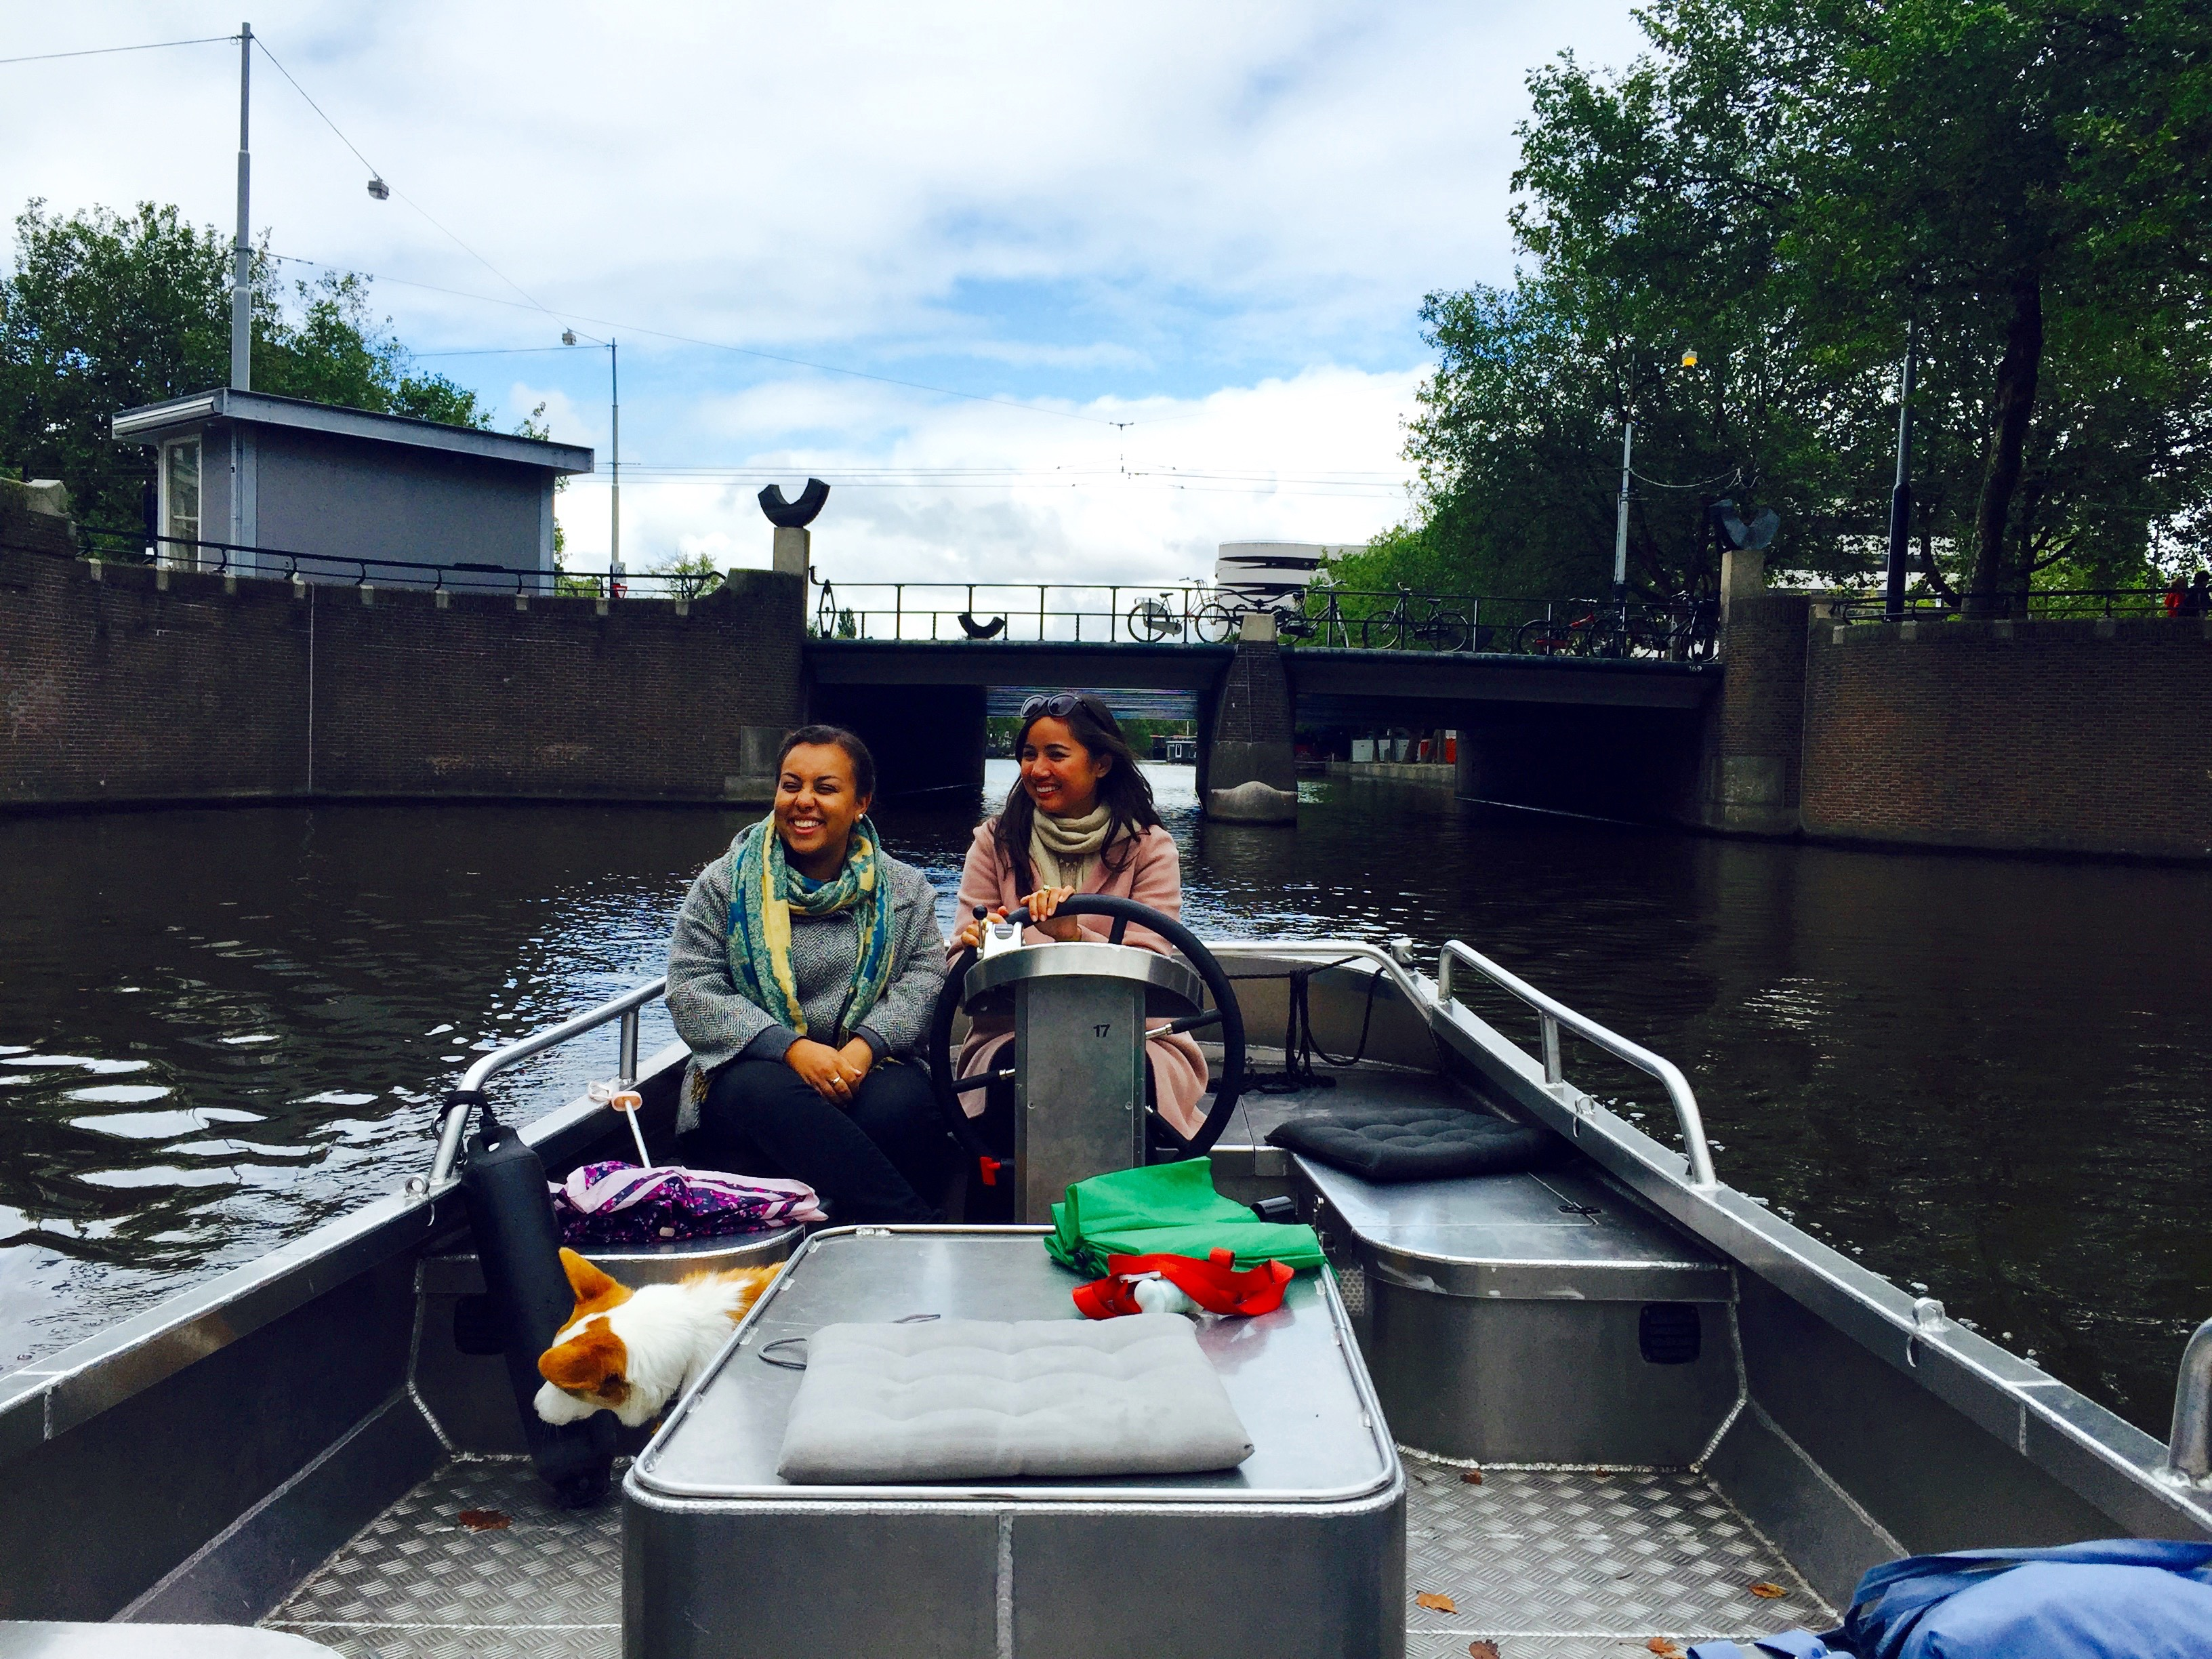 Trying to figure out how to park the boat was an adventure in and of itself. What to do in Amsterdam.